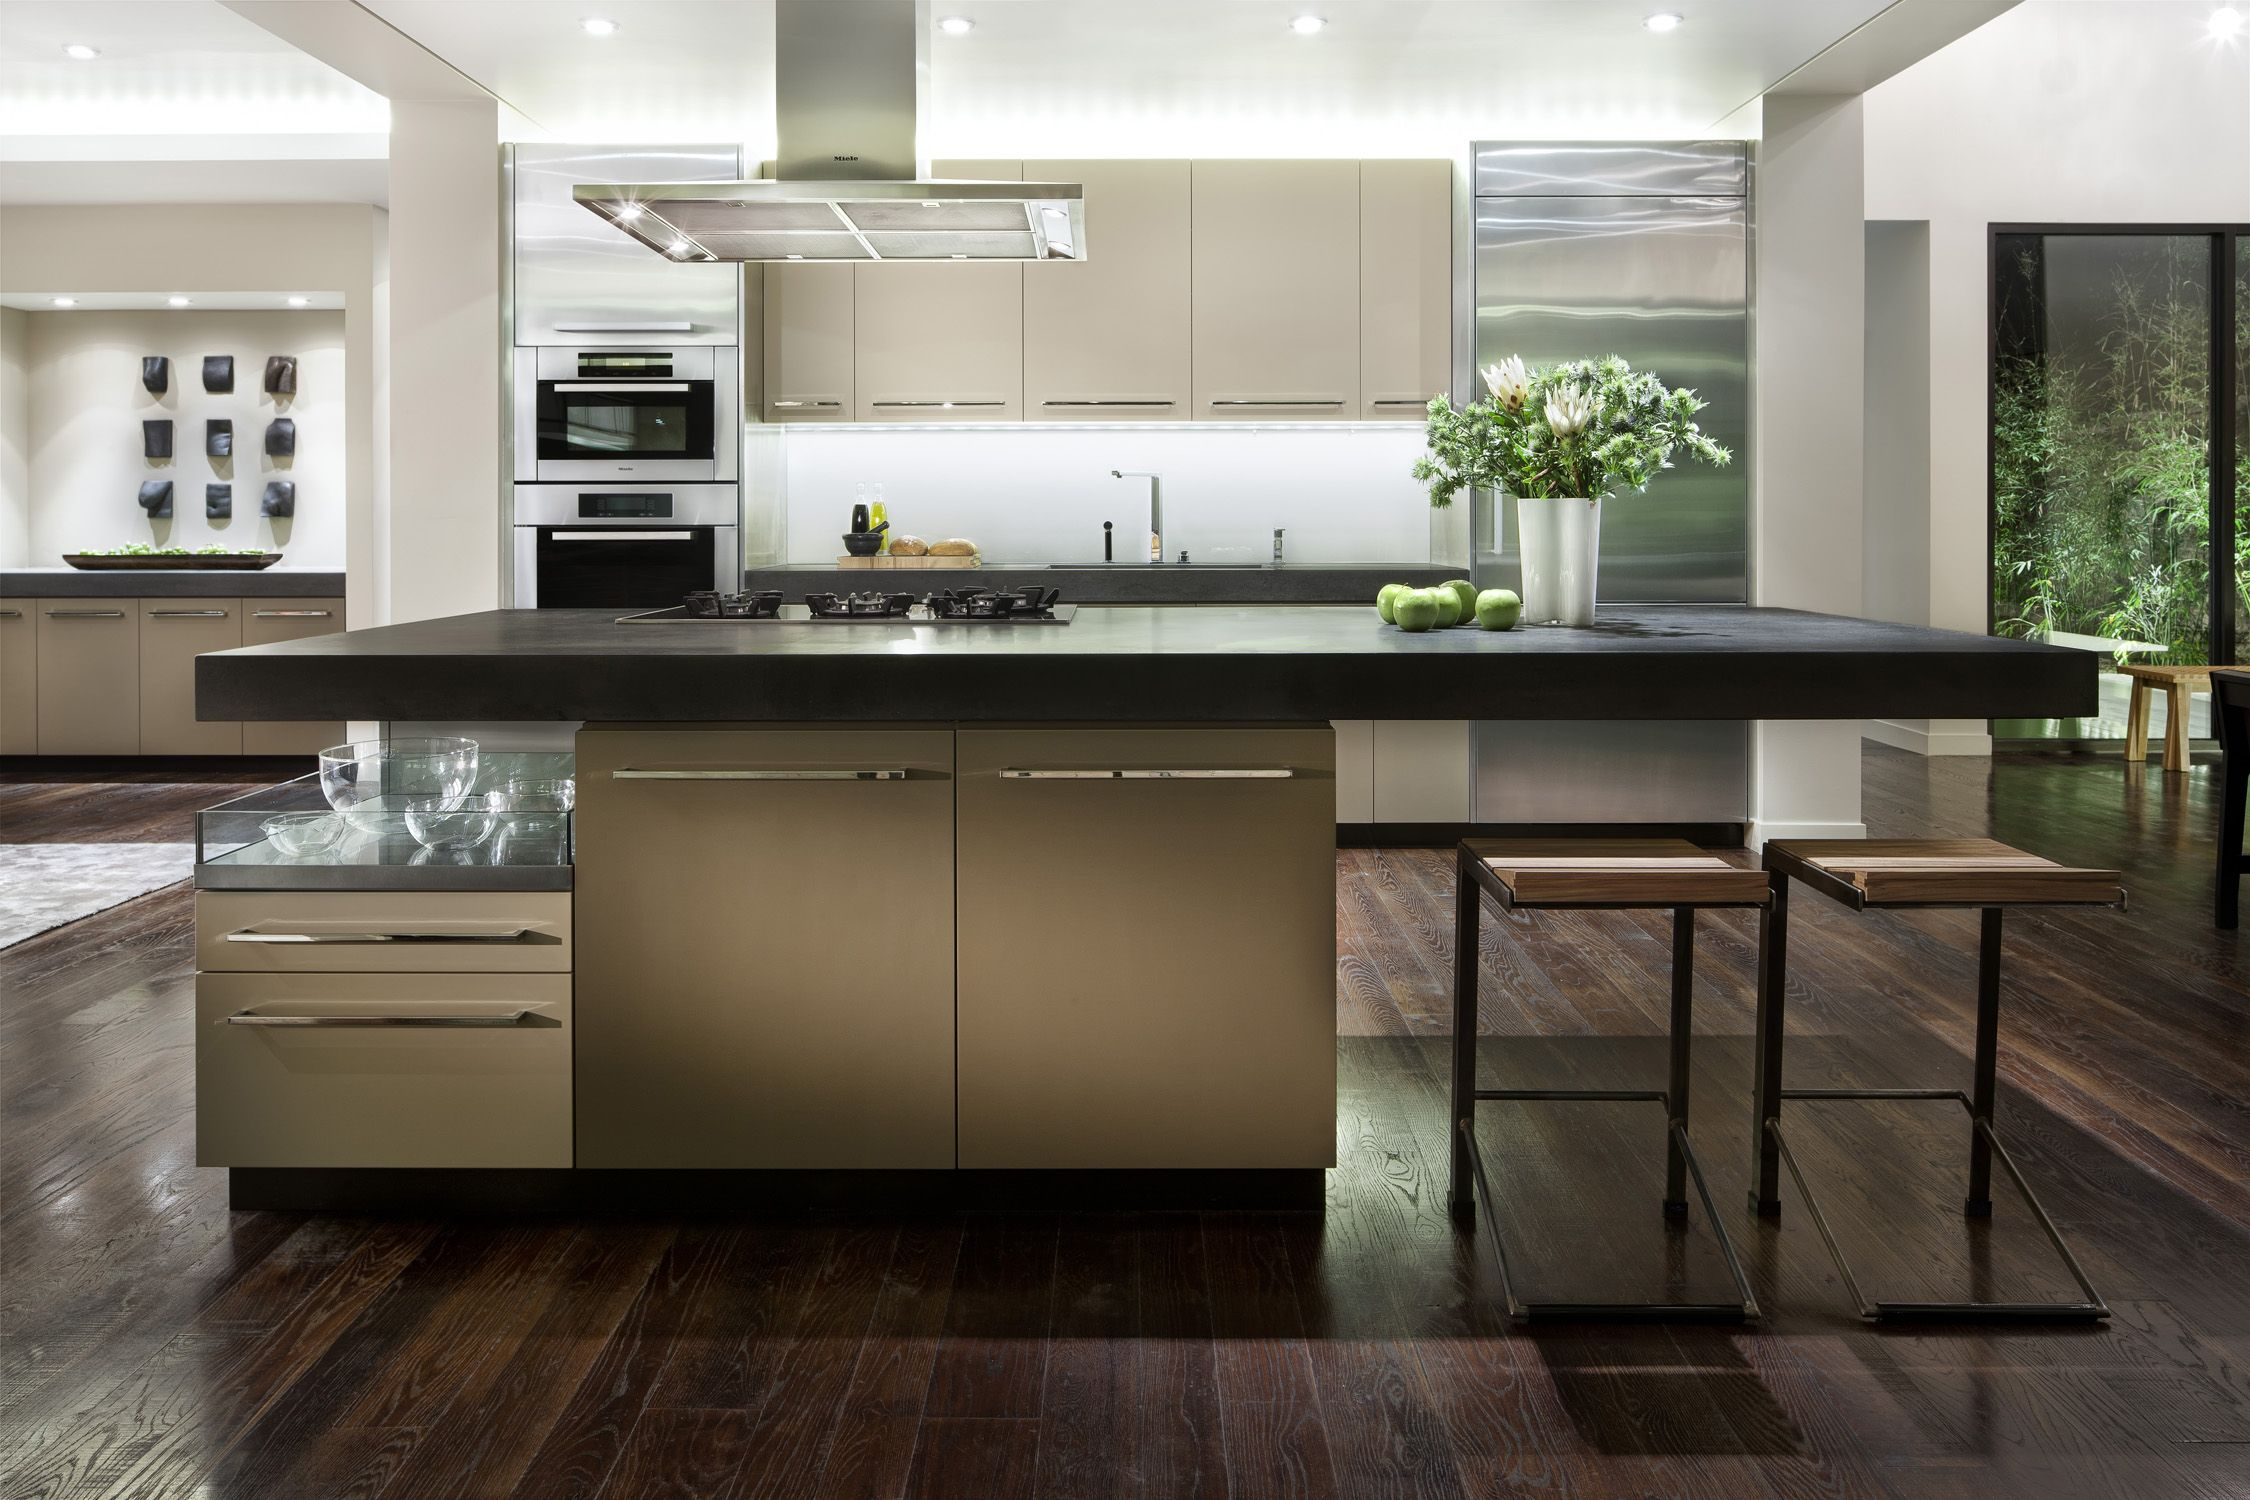 Miele Kitchen by Tamie Glass & Uli Danel Interieur